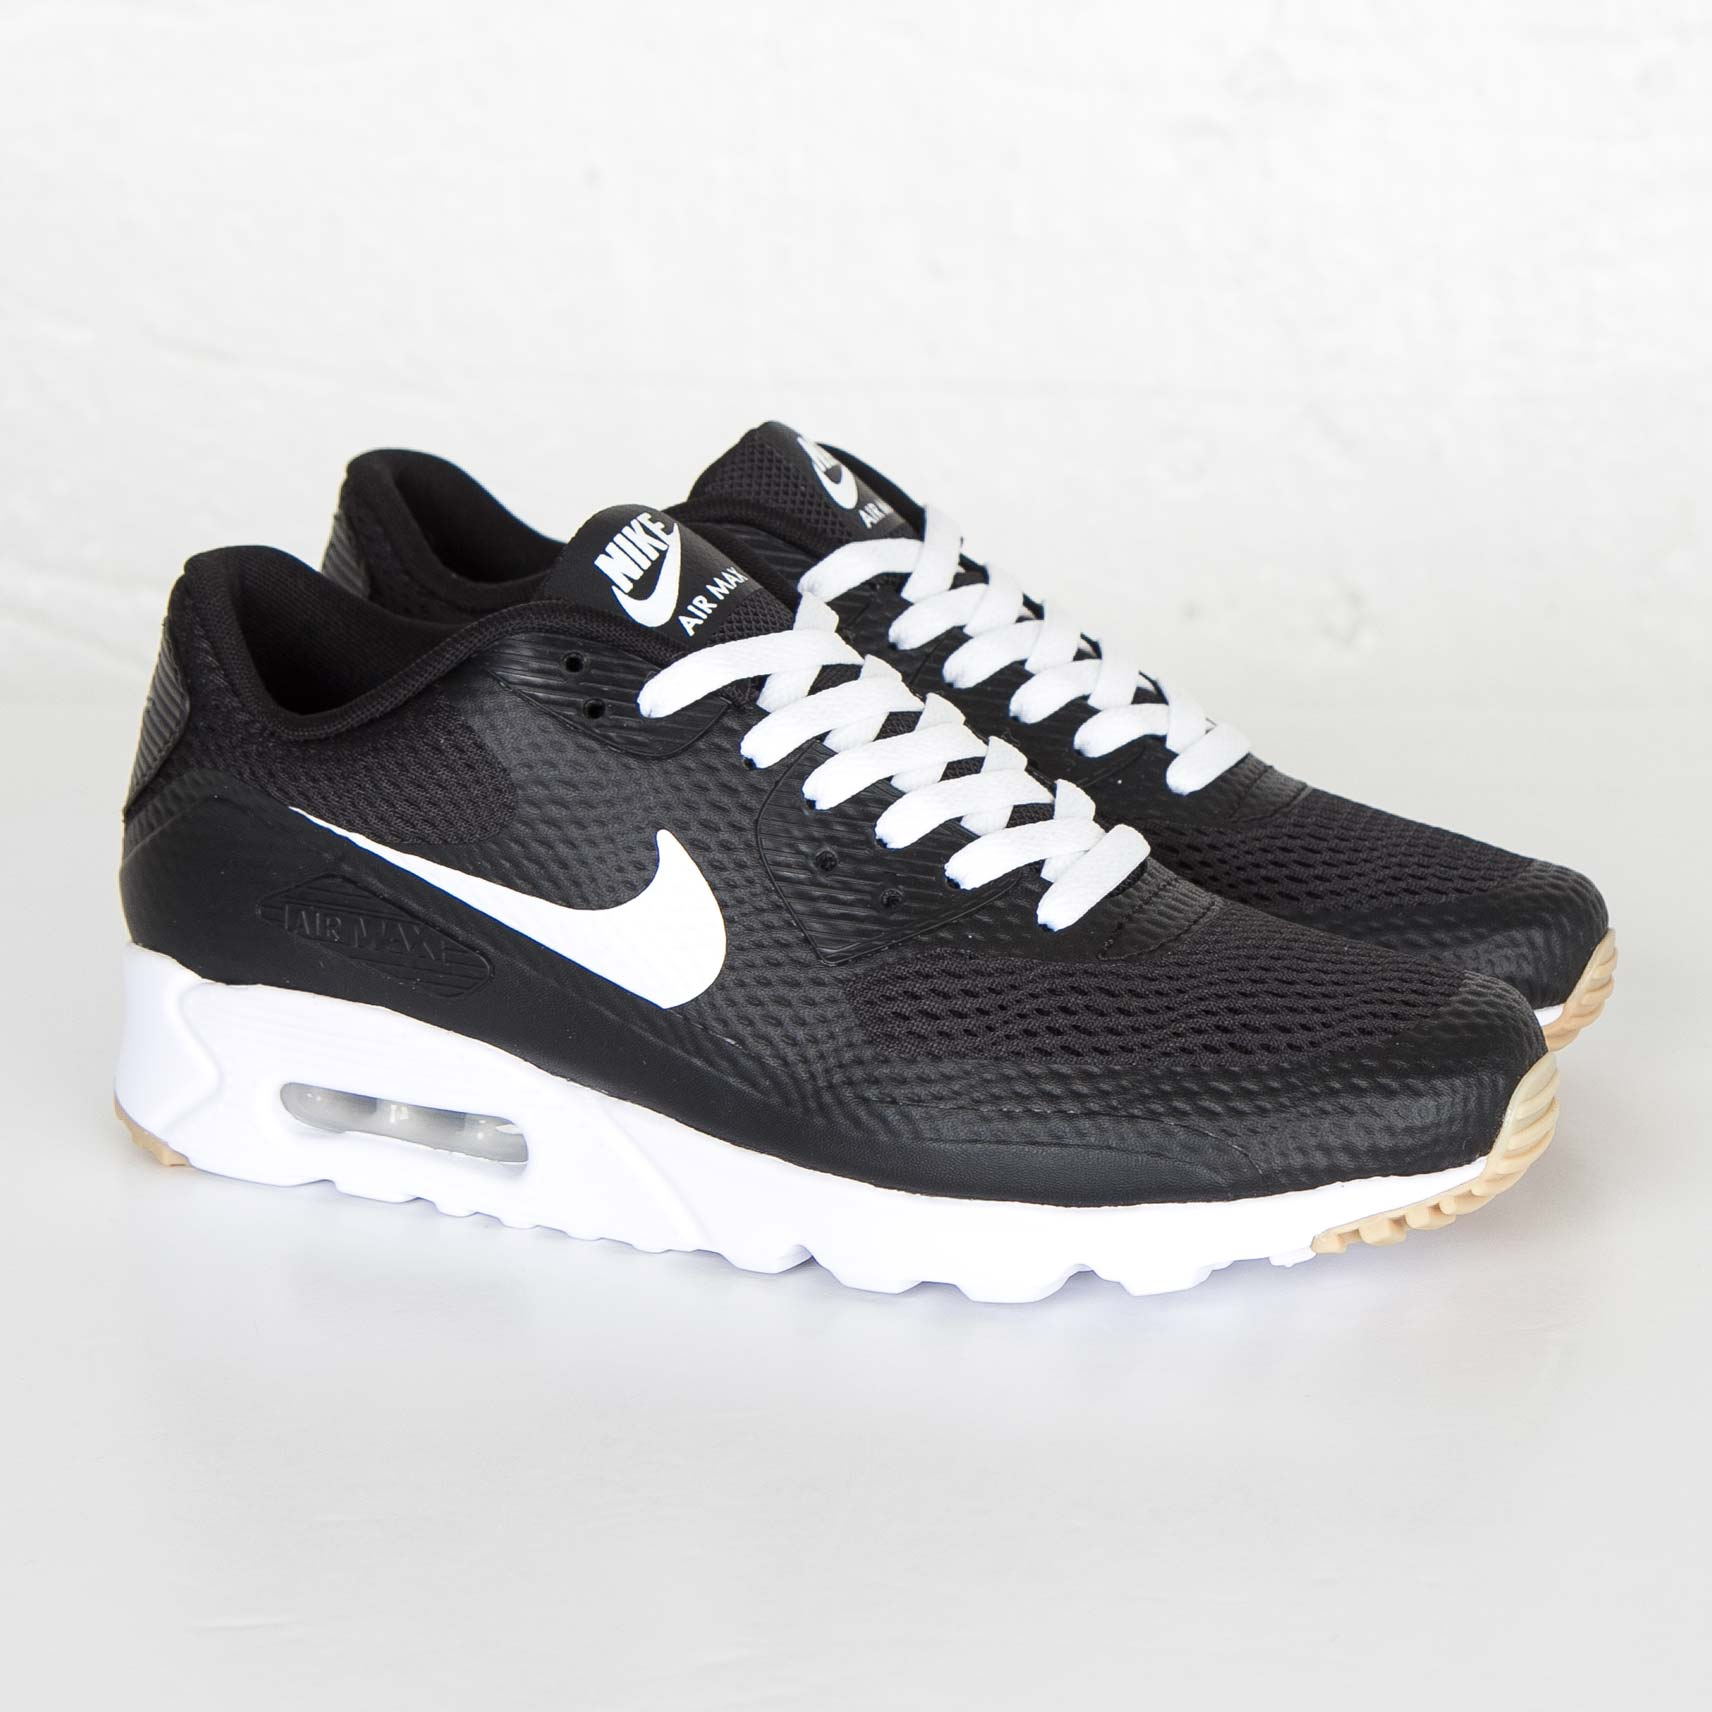 promo code 85716 c0866 Nike Air Max 90 Ultra Essential